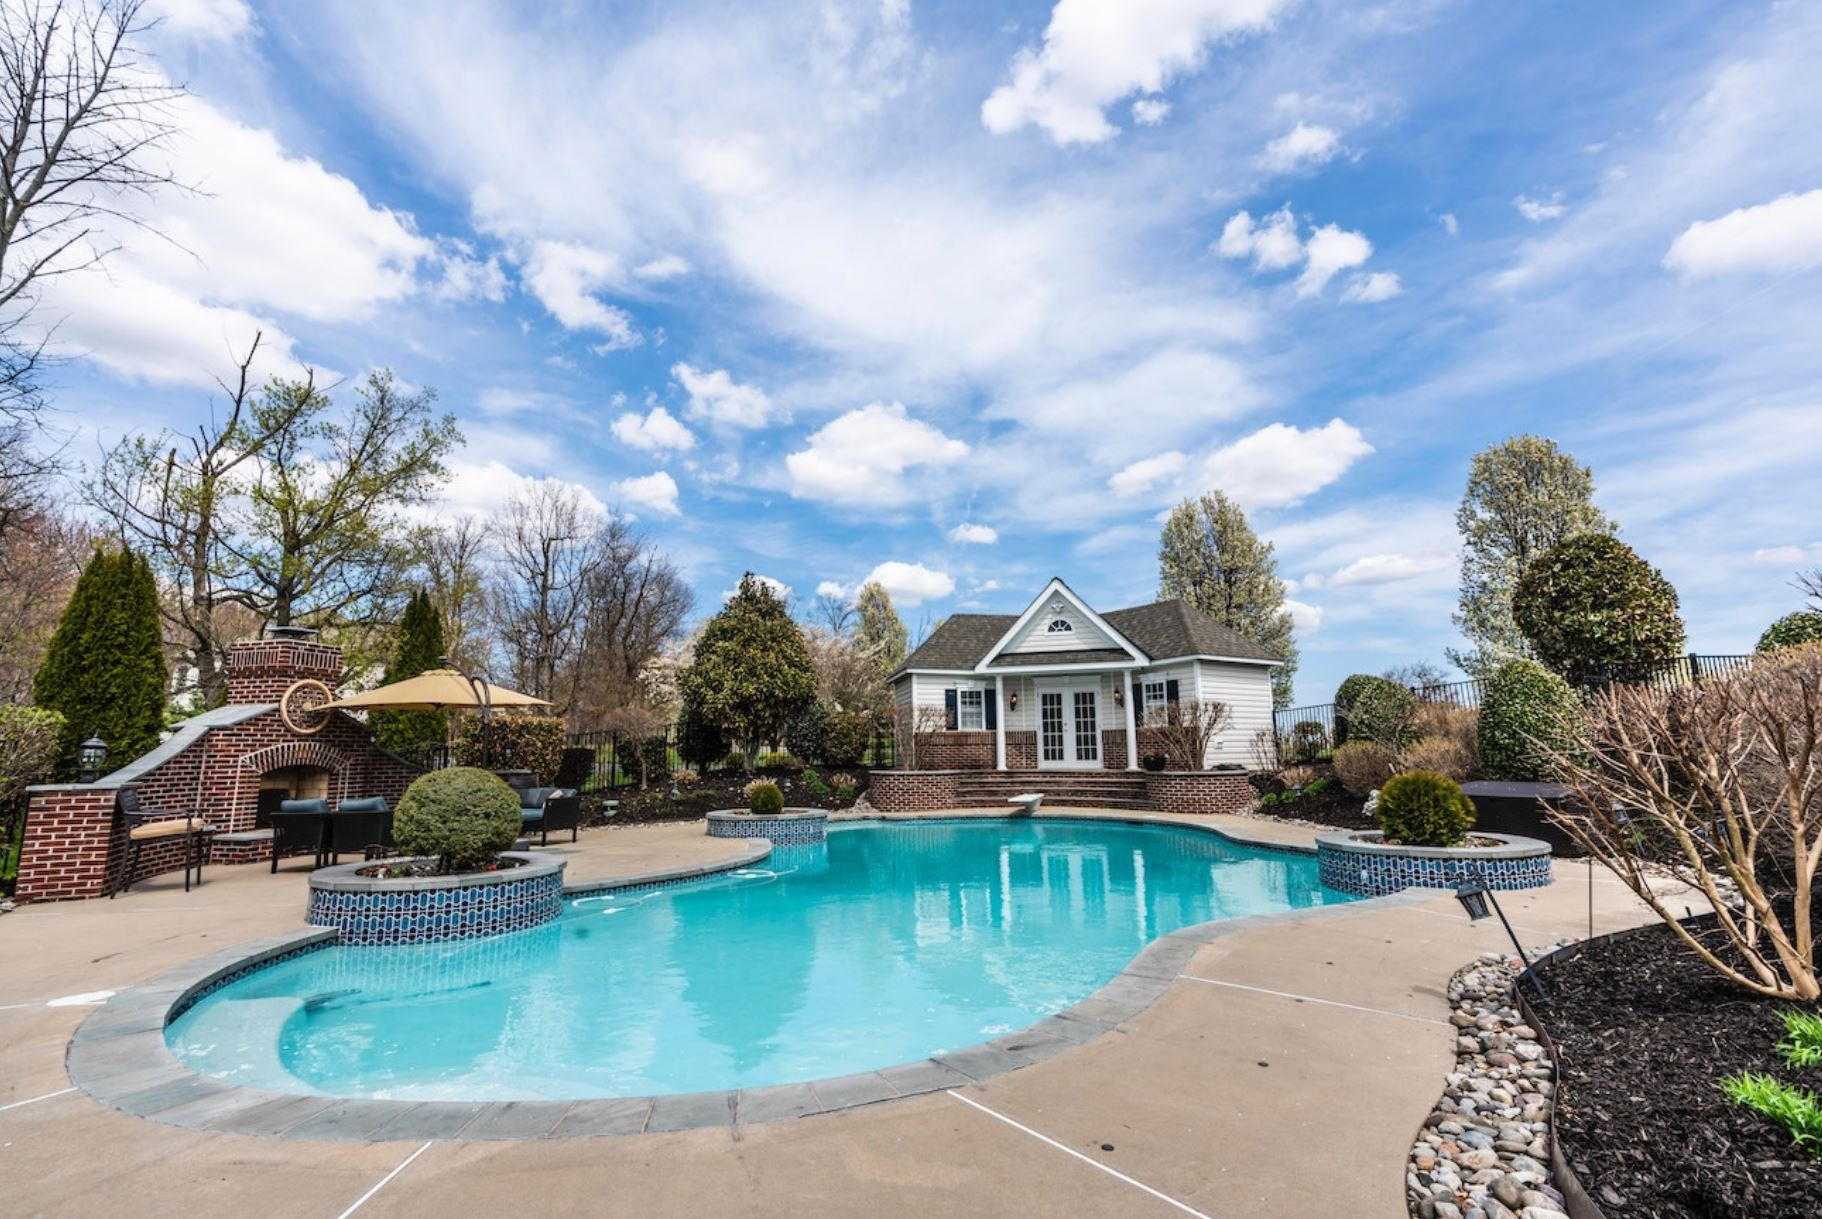 Realtor Magazine 2021 04 26 Homes With Pools are Selling for a Premium right now after going through the COVID-19 Coronavirus pandemic Hoey Team exp Realty